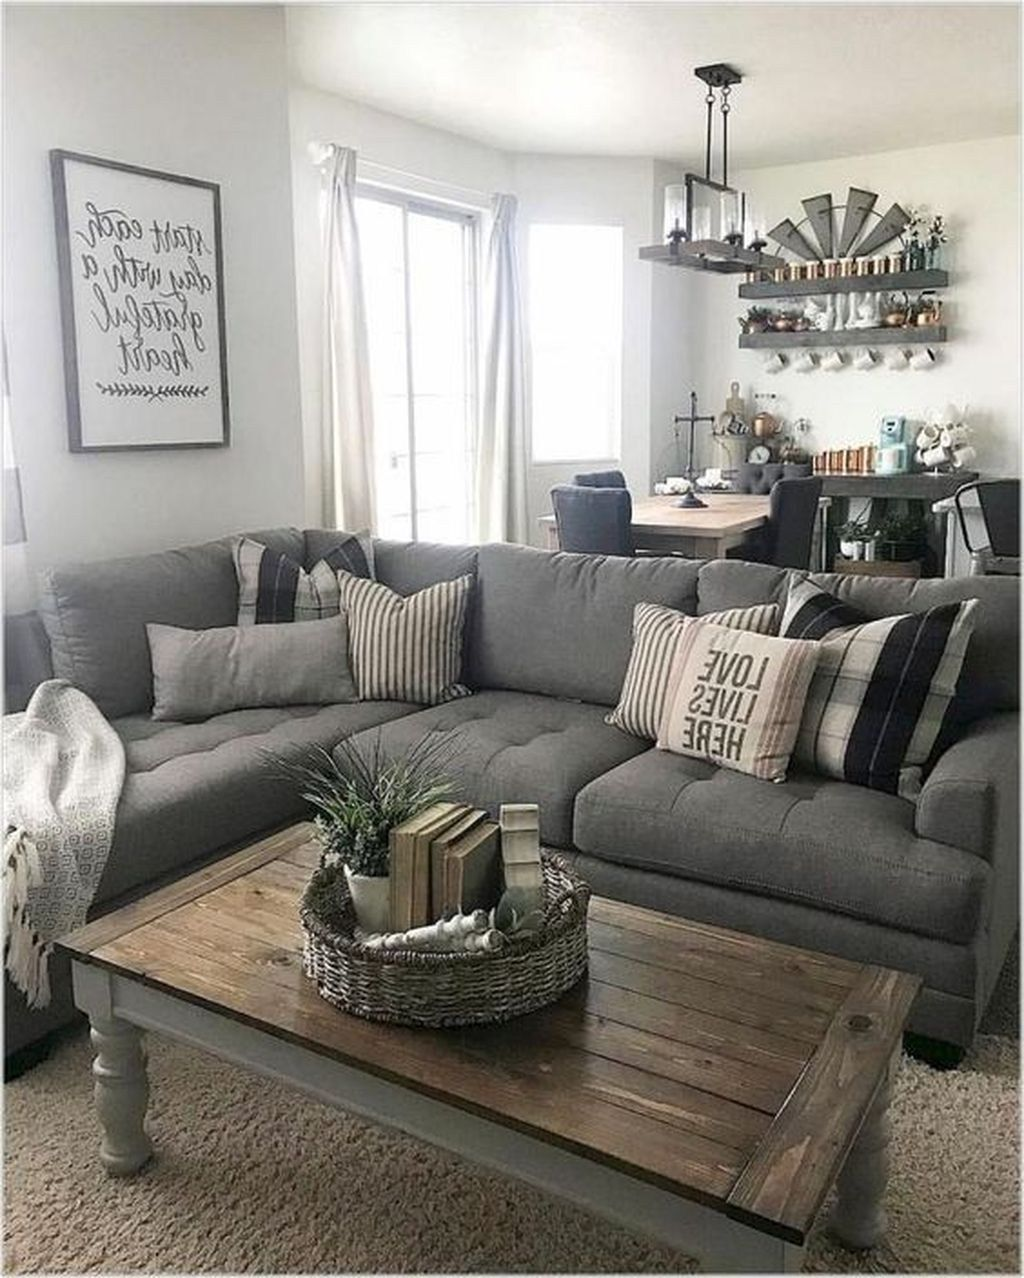 50 Beautiful Small Space Living Room Decoration Ideas Sweetyhomee Livingroom Farm House Living Room Small Living Room Decor Living Room Designs Small Spaces